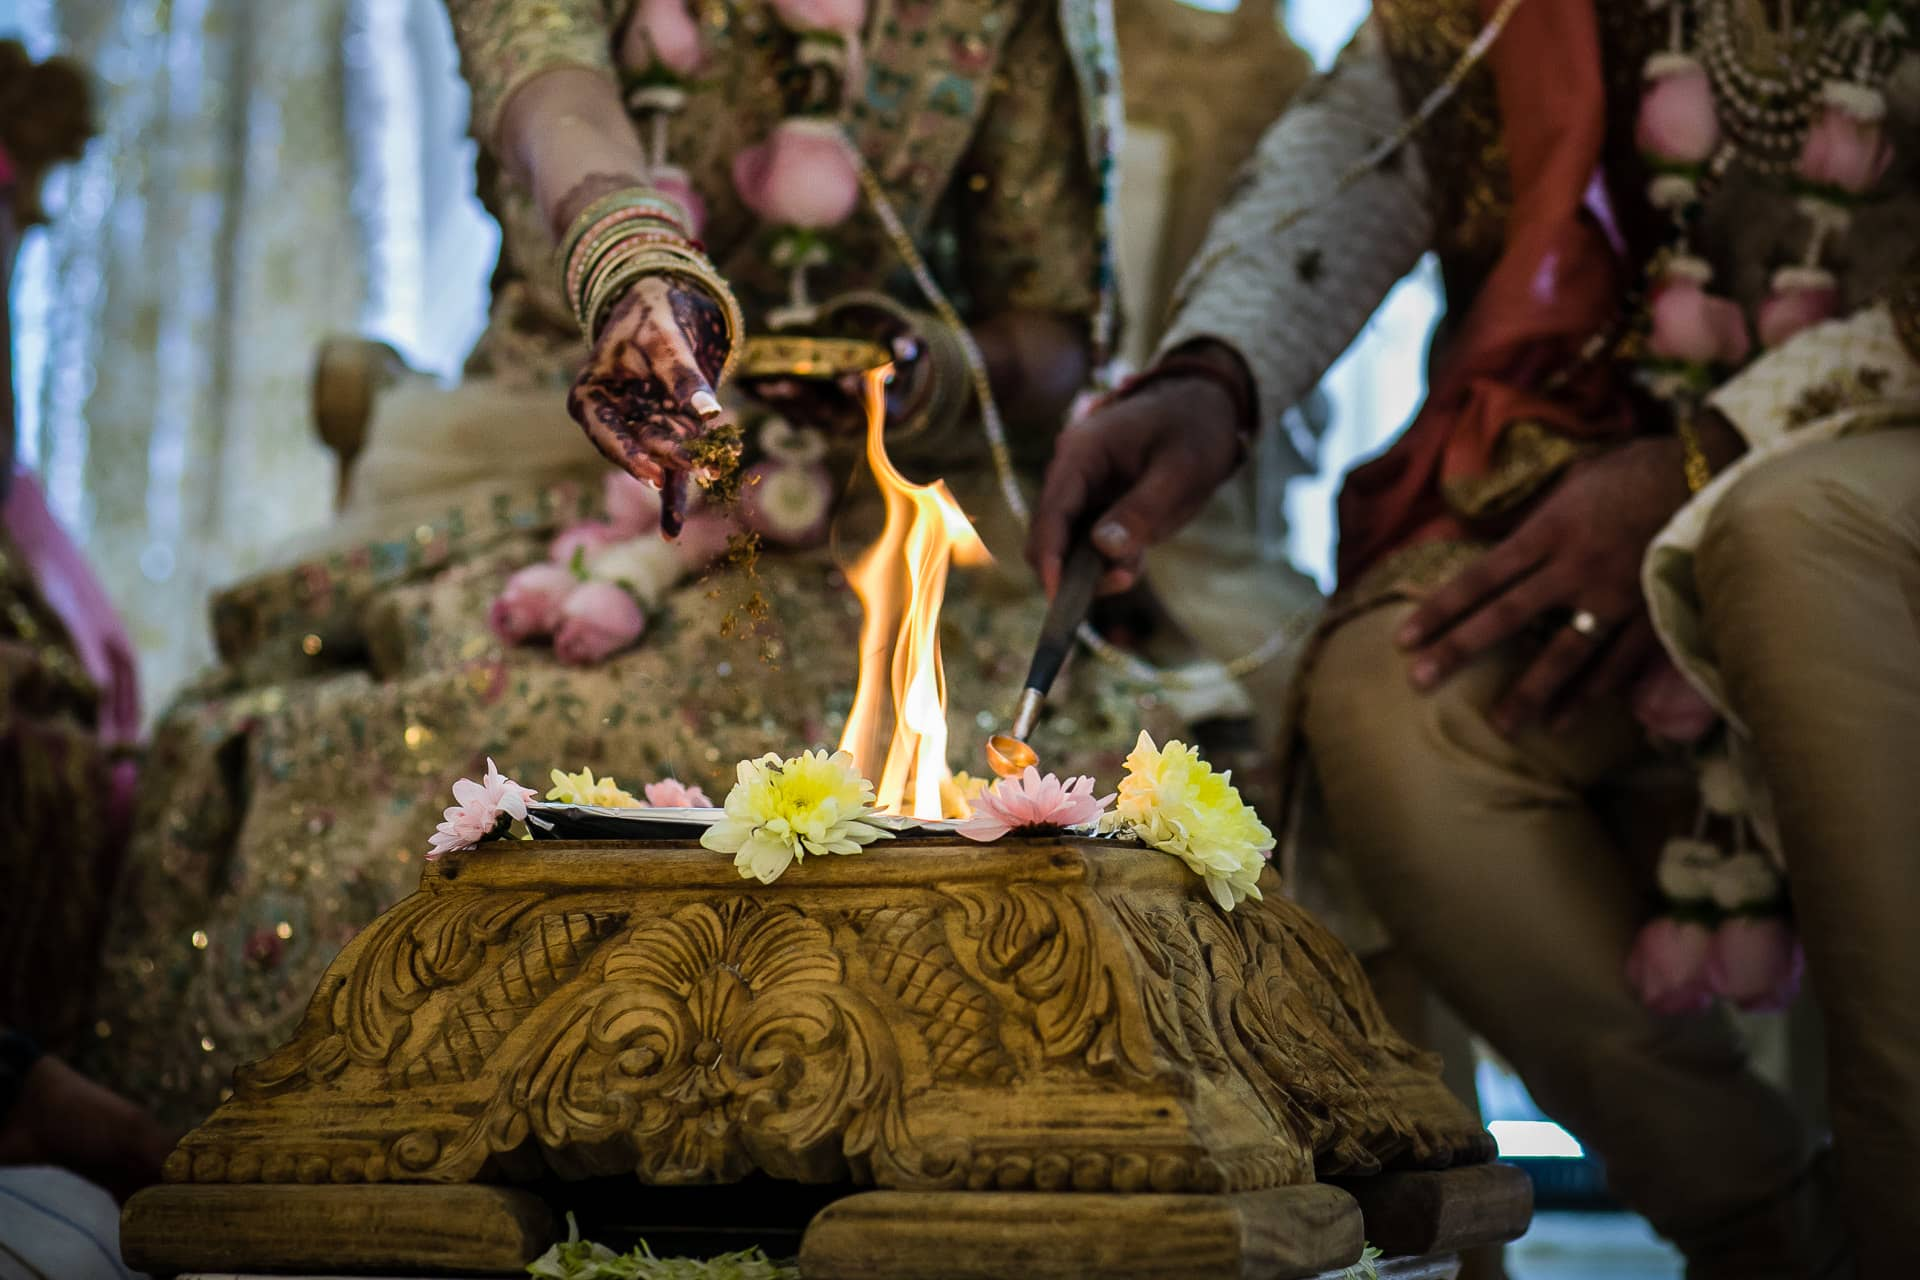 Seeds being poured into the fire during wedding ceremony